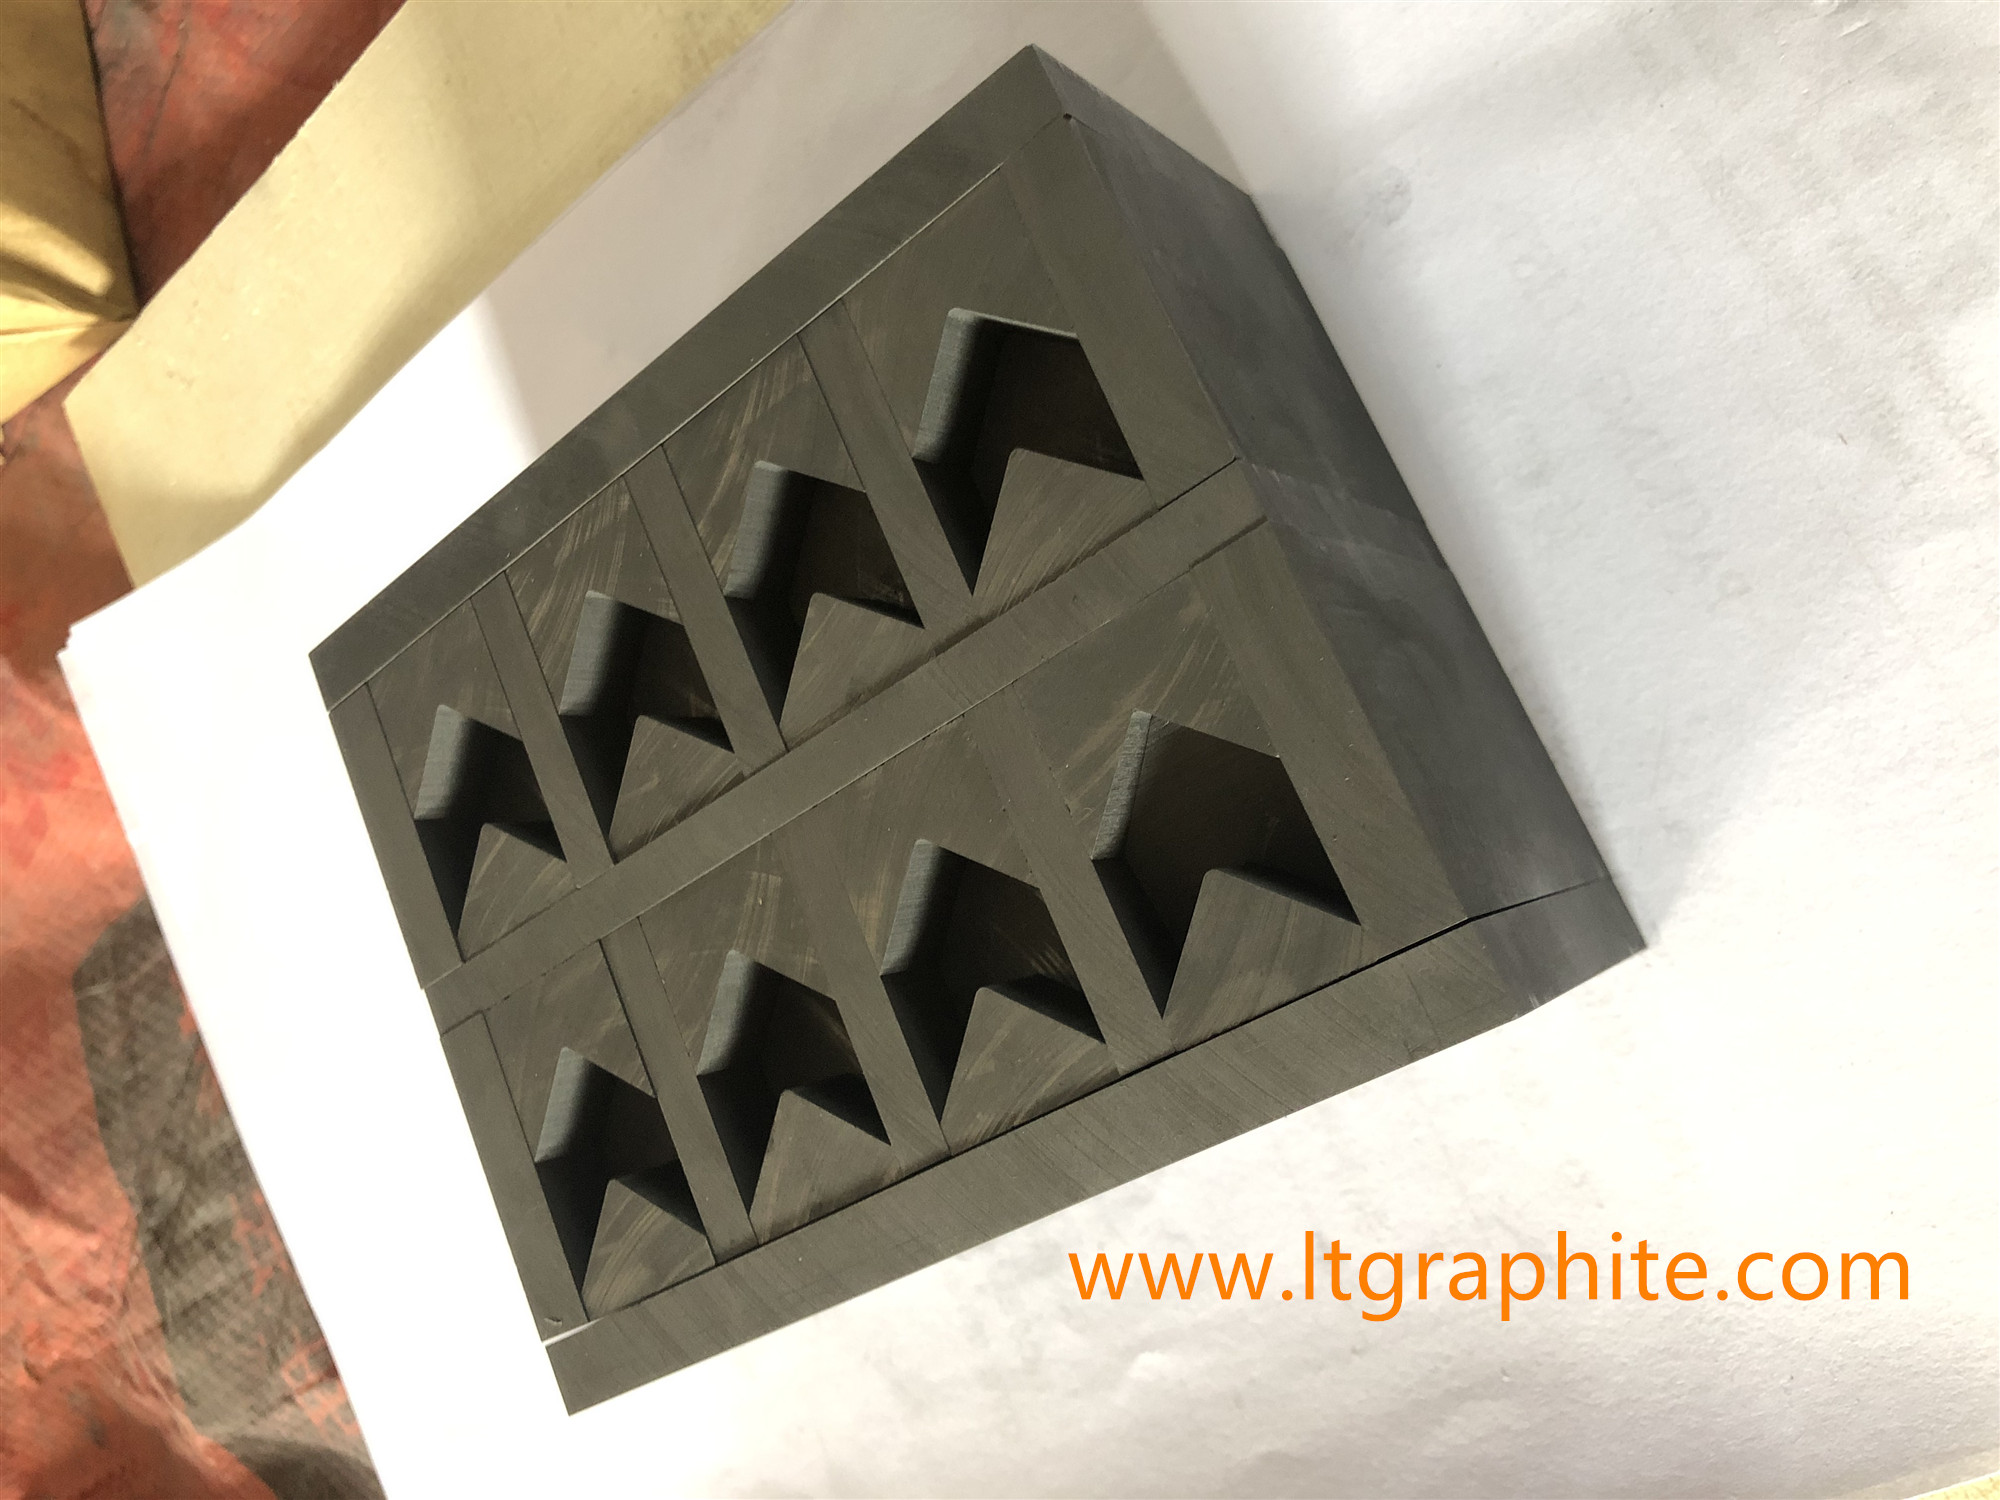 High Purity Fine-Grain Graphite Mold for Arrow Segments on Grinding Cup Wheels